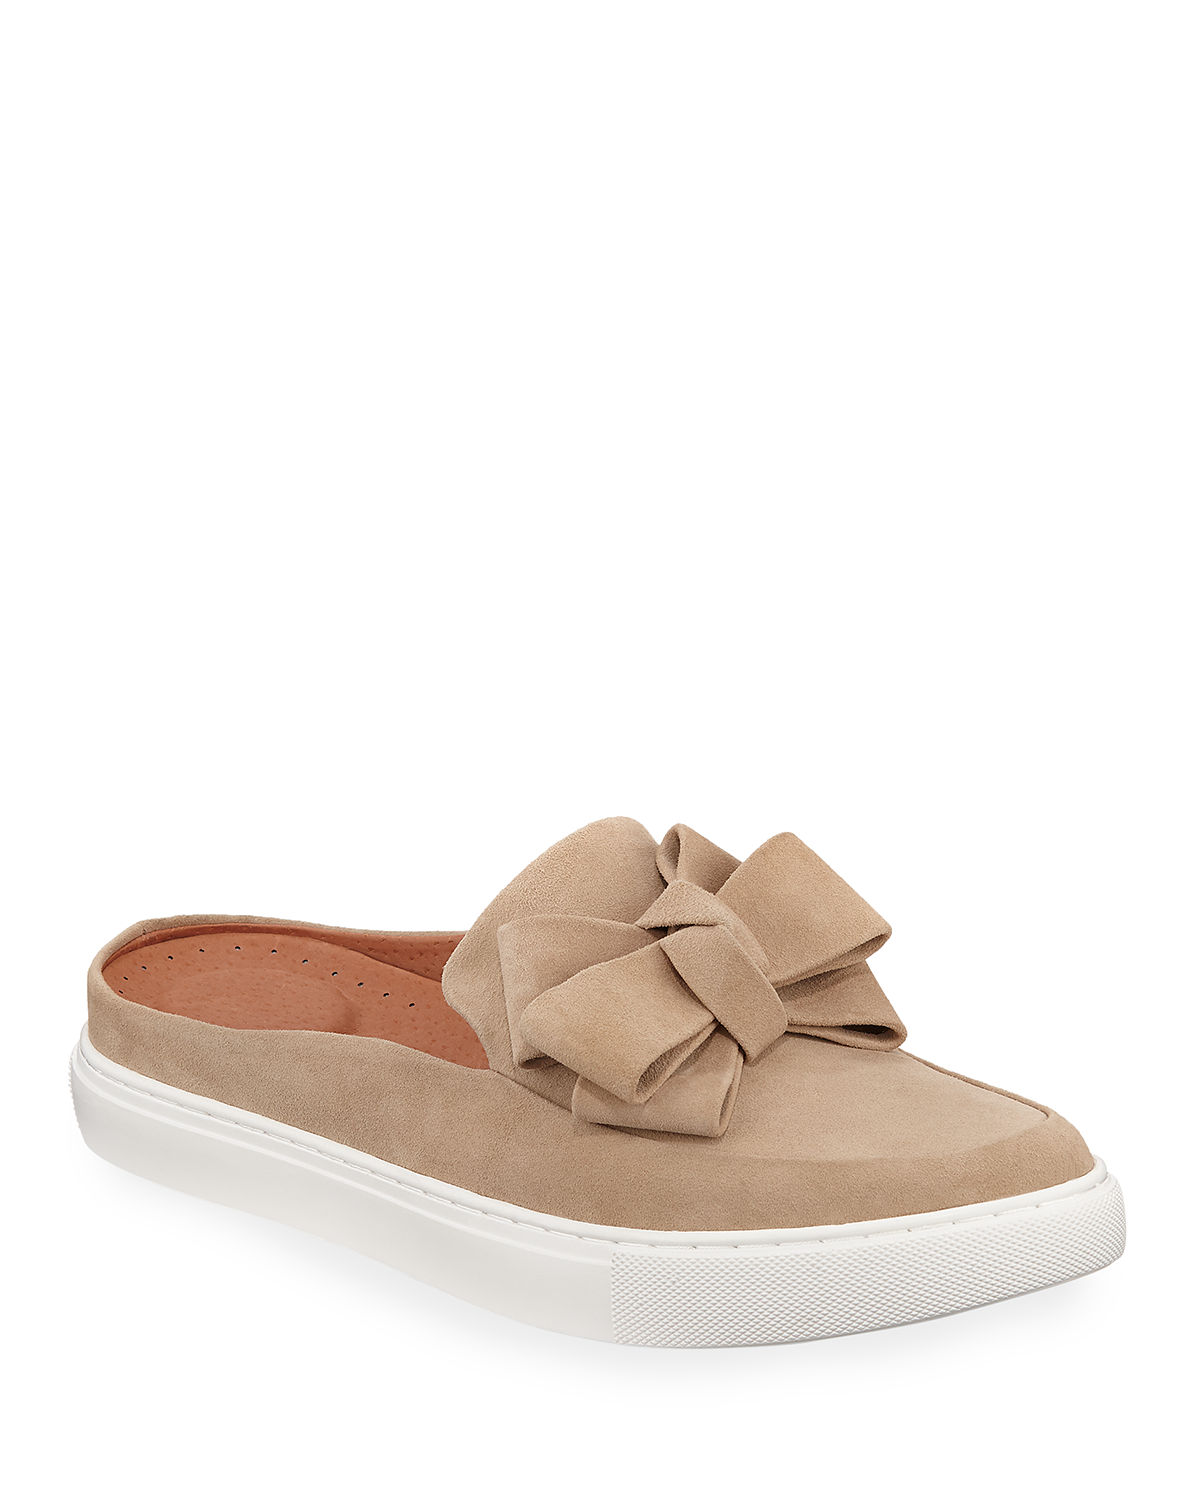 0f99bf0d282 Gentle Souls Rory Ribbon-Front Suede Mule Sneakers